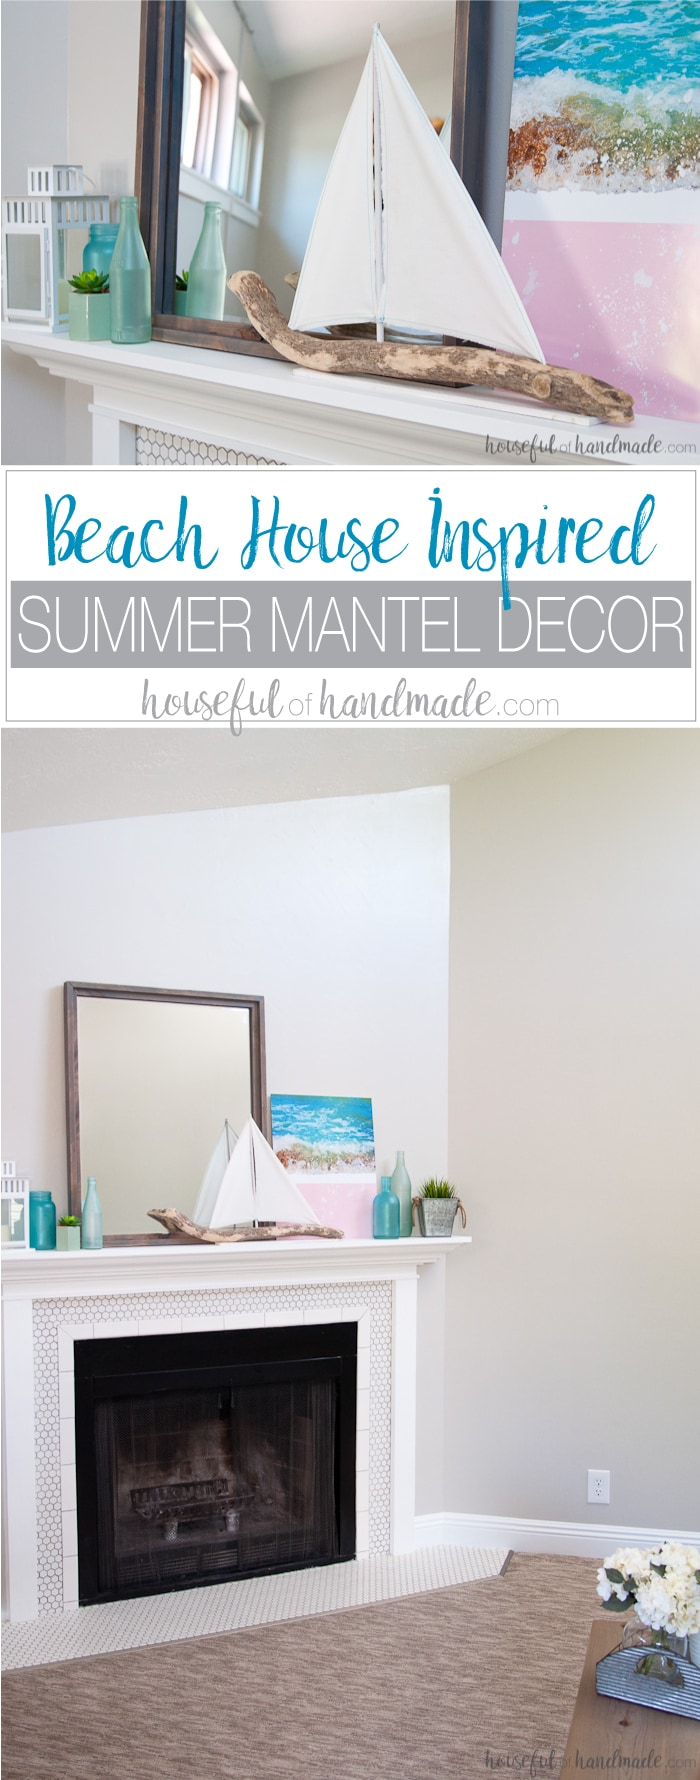 Beach House Inspired Summer Mantel Decor Houseful Of Handmade